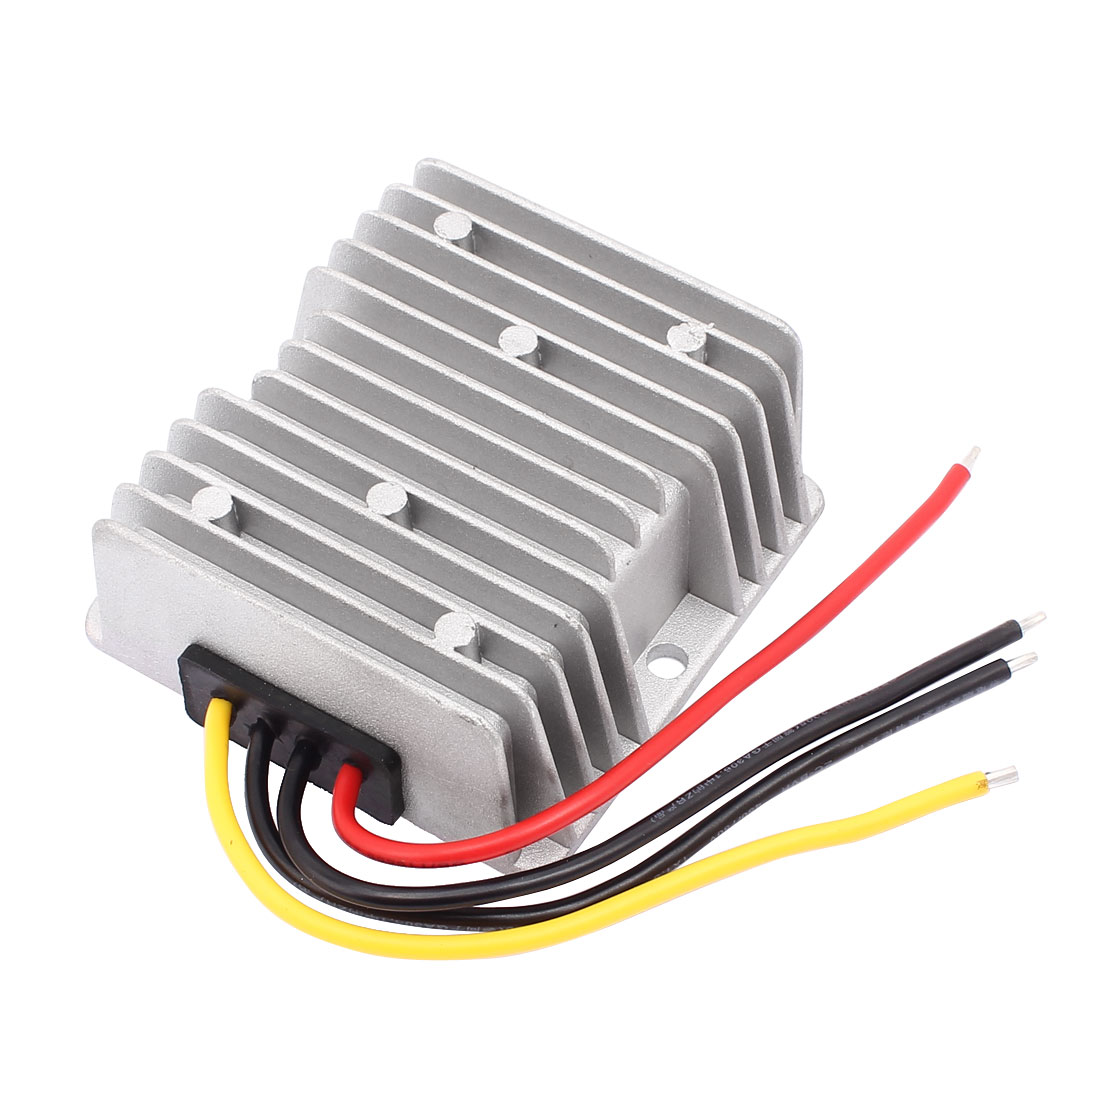 DC12V(10V-36V) to DC12V 10A 120W Booster Waterproof Car Power Converter Regulator Transformer